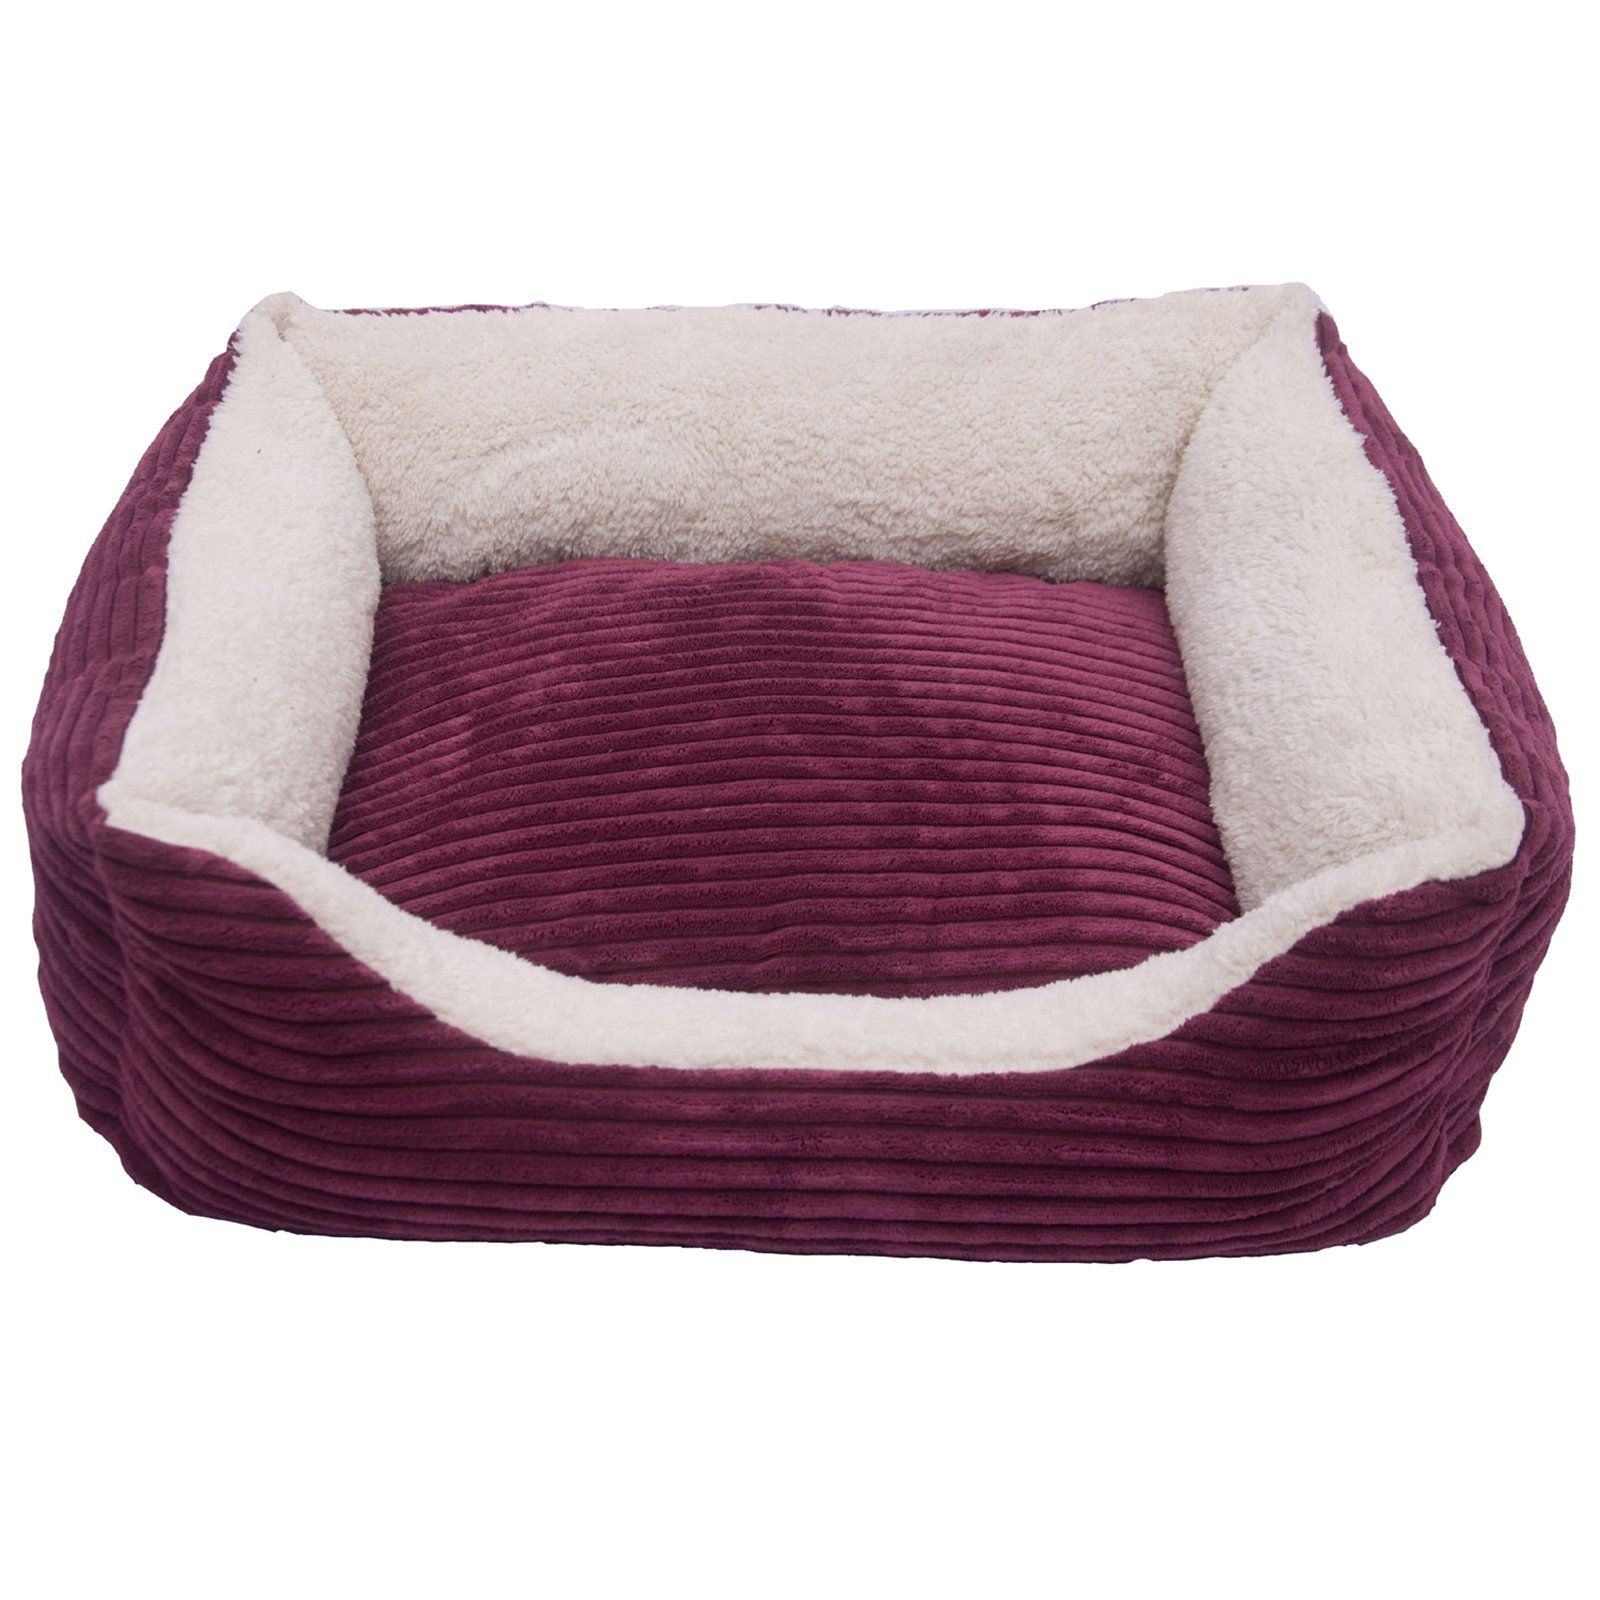 Iconic Pet Luxury Lounge Bolster Pet Bed - 51483